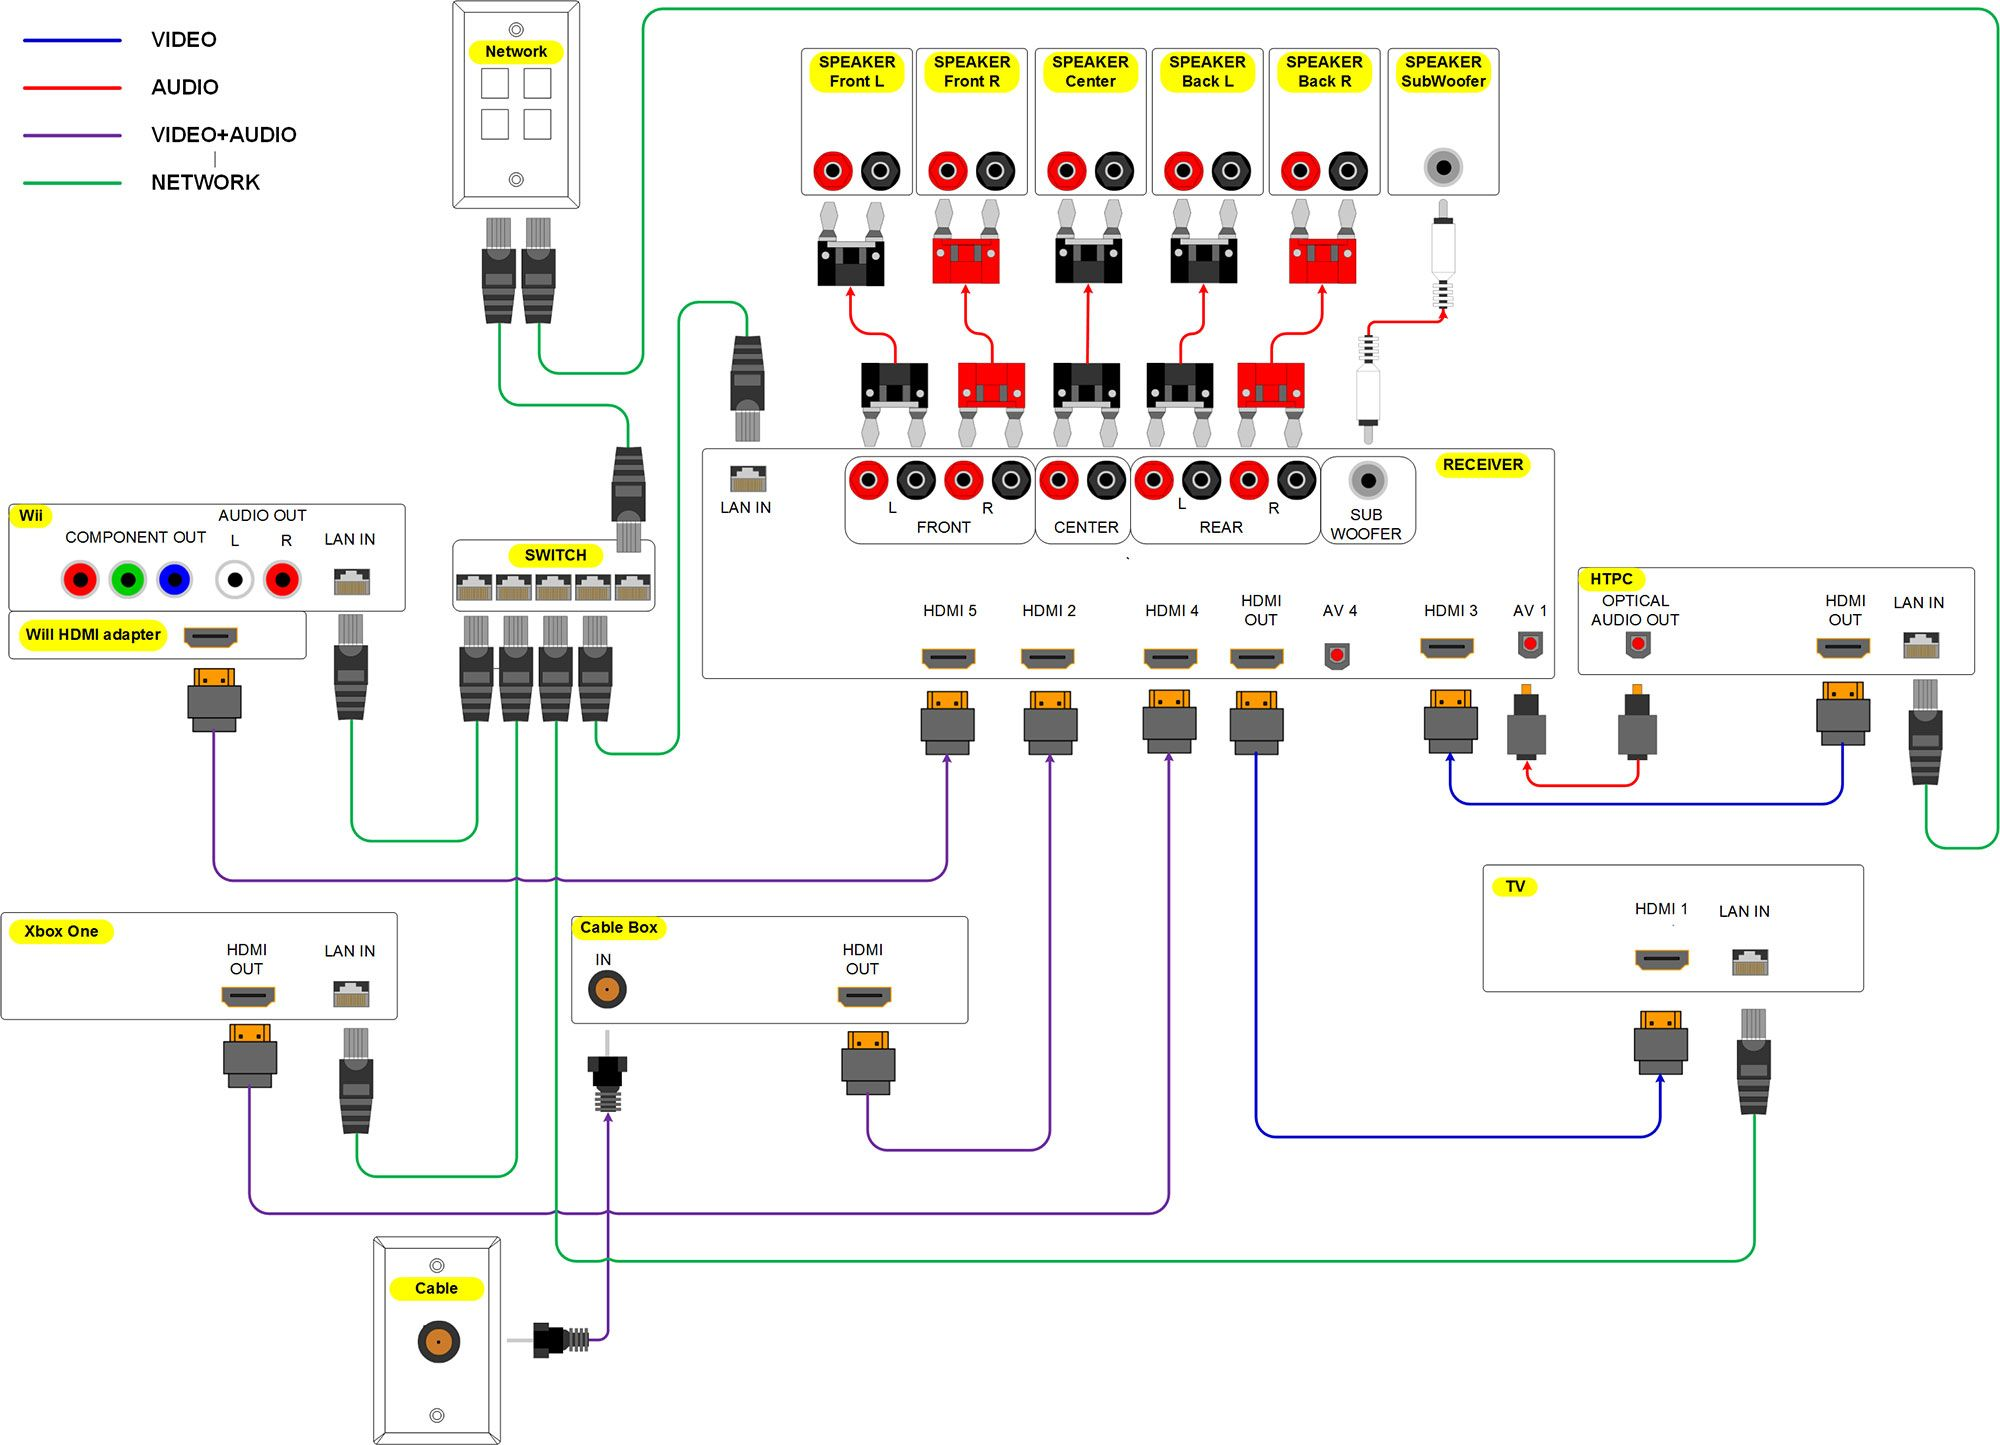 Home Theater Wiring Diagram (click it to see the big 2000 pixel wide ...